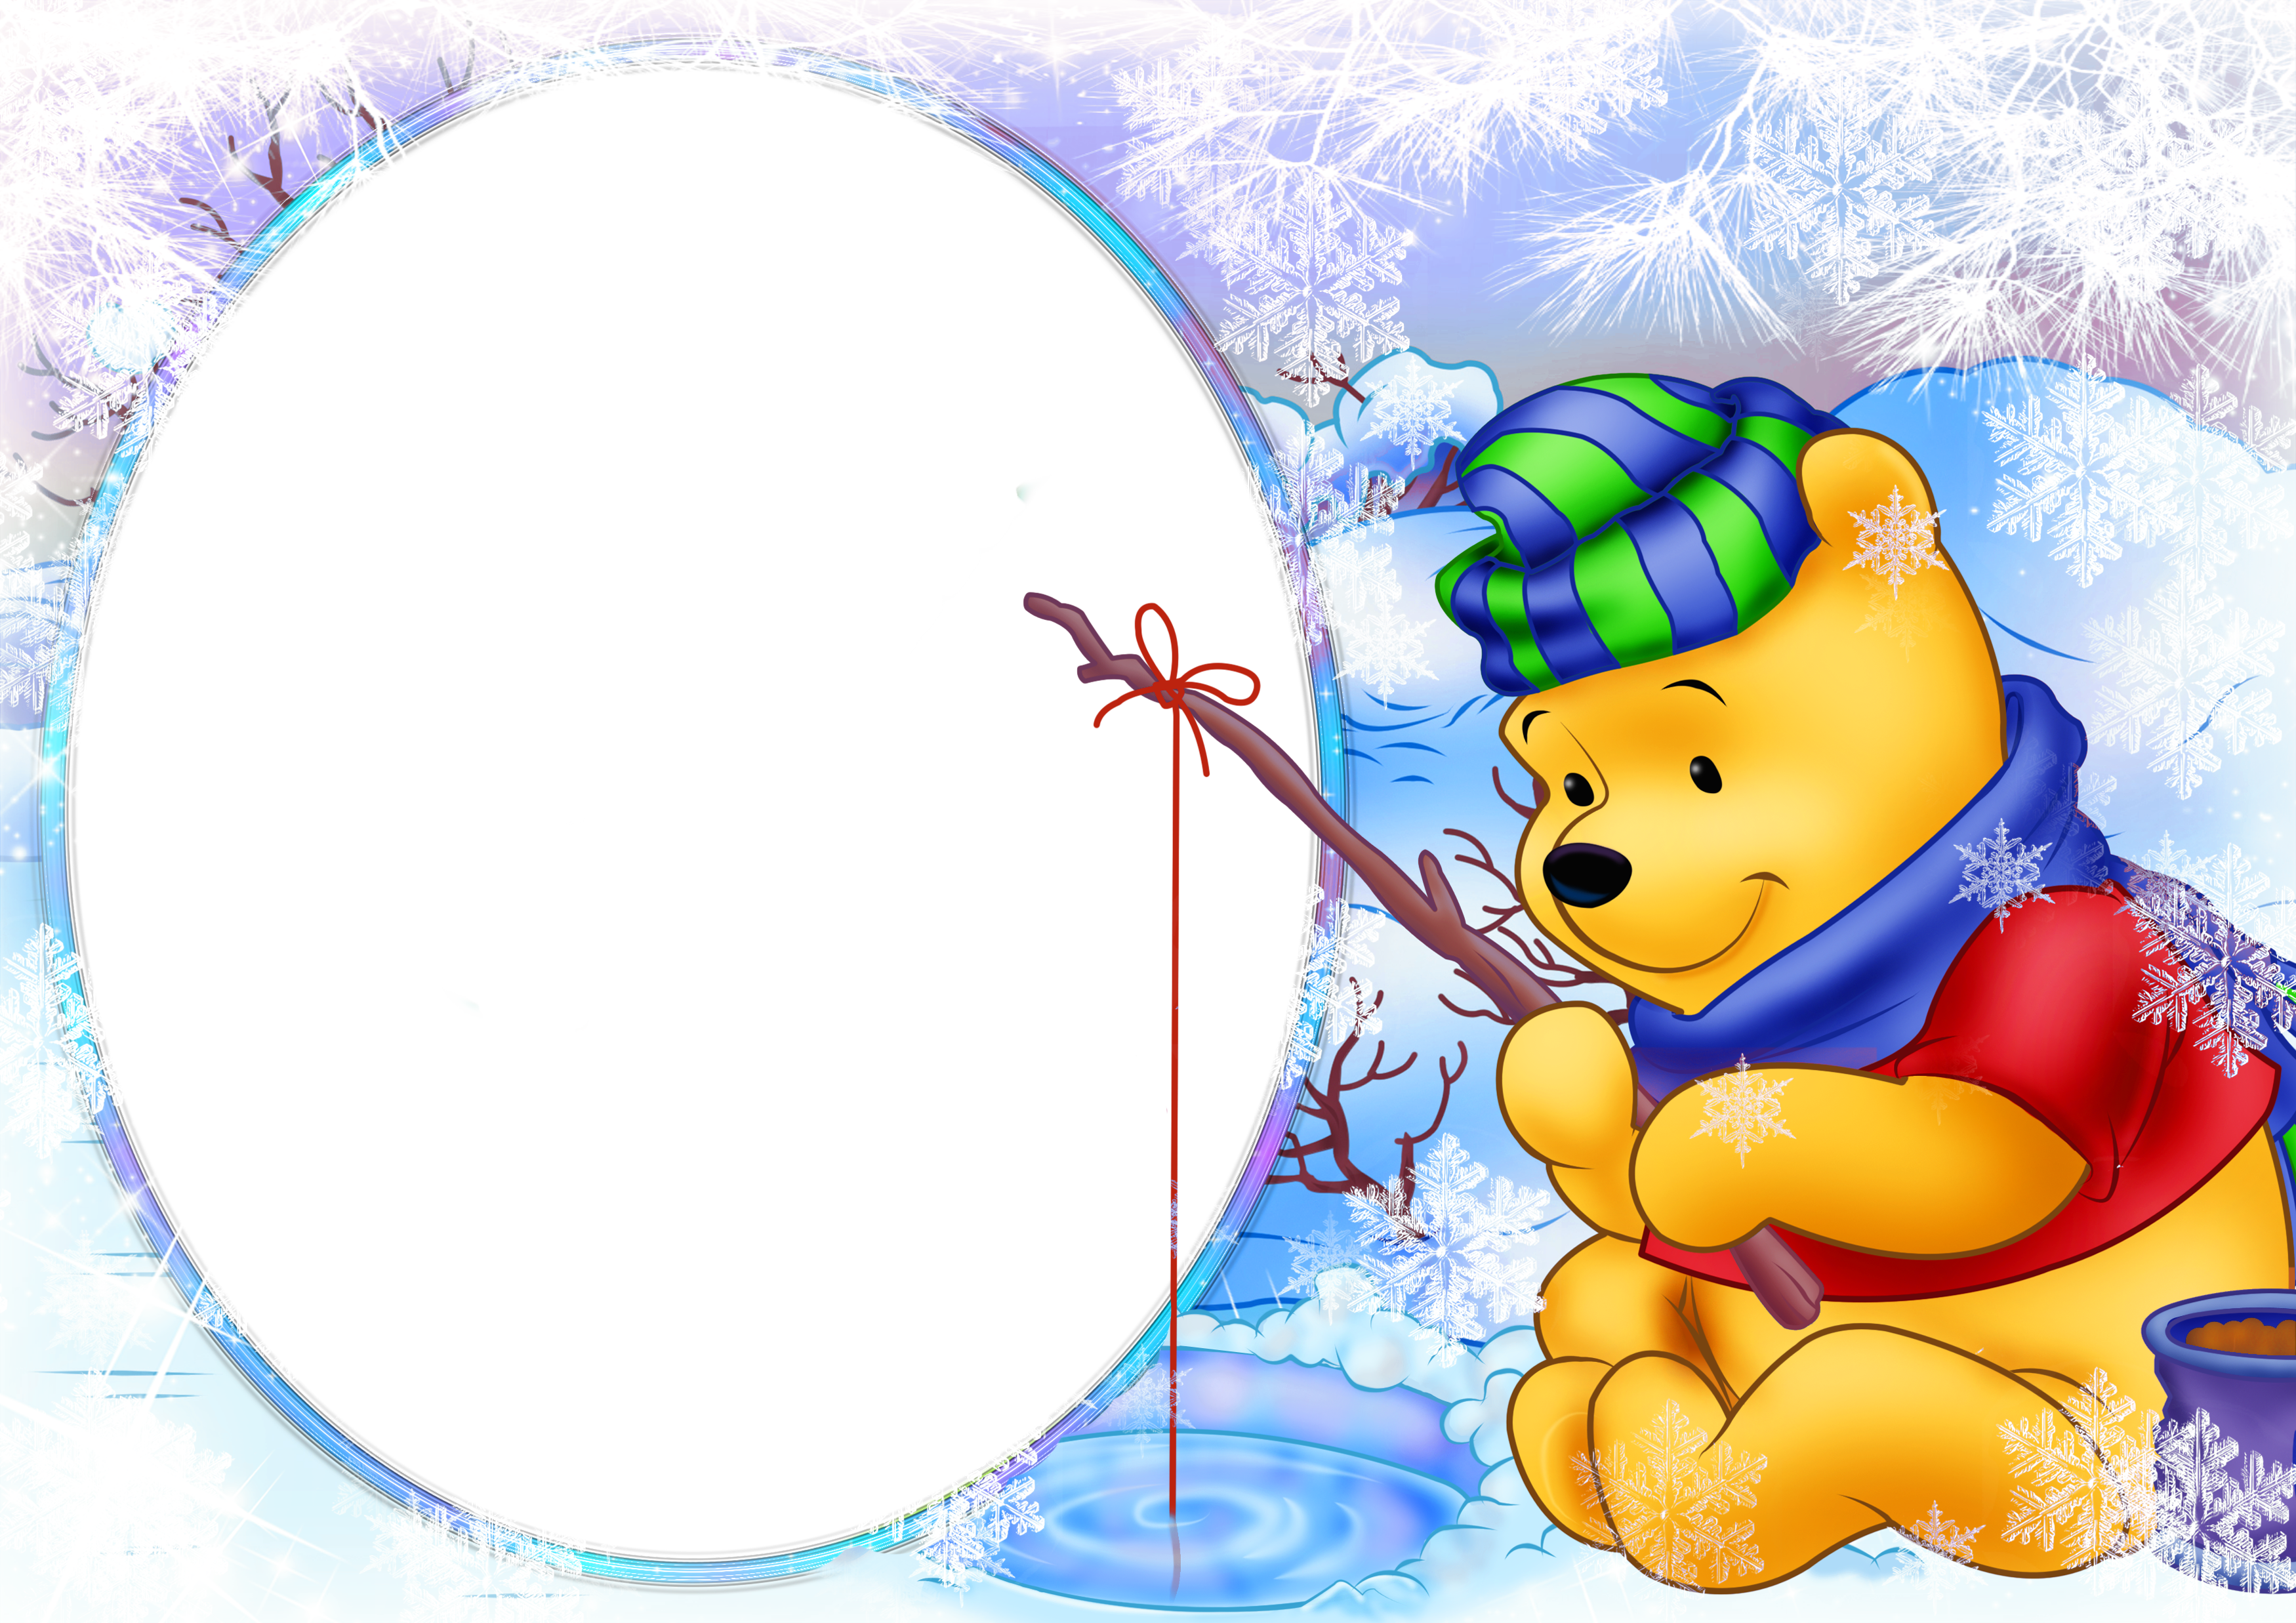 Winter school clipart image transparent download Christmas Kids Winter Frame with Winnie the Pooh | Gallery ... image transparent download